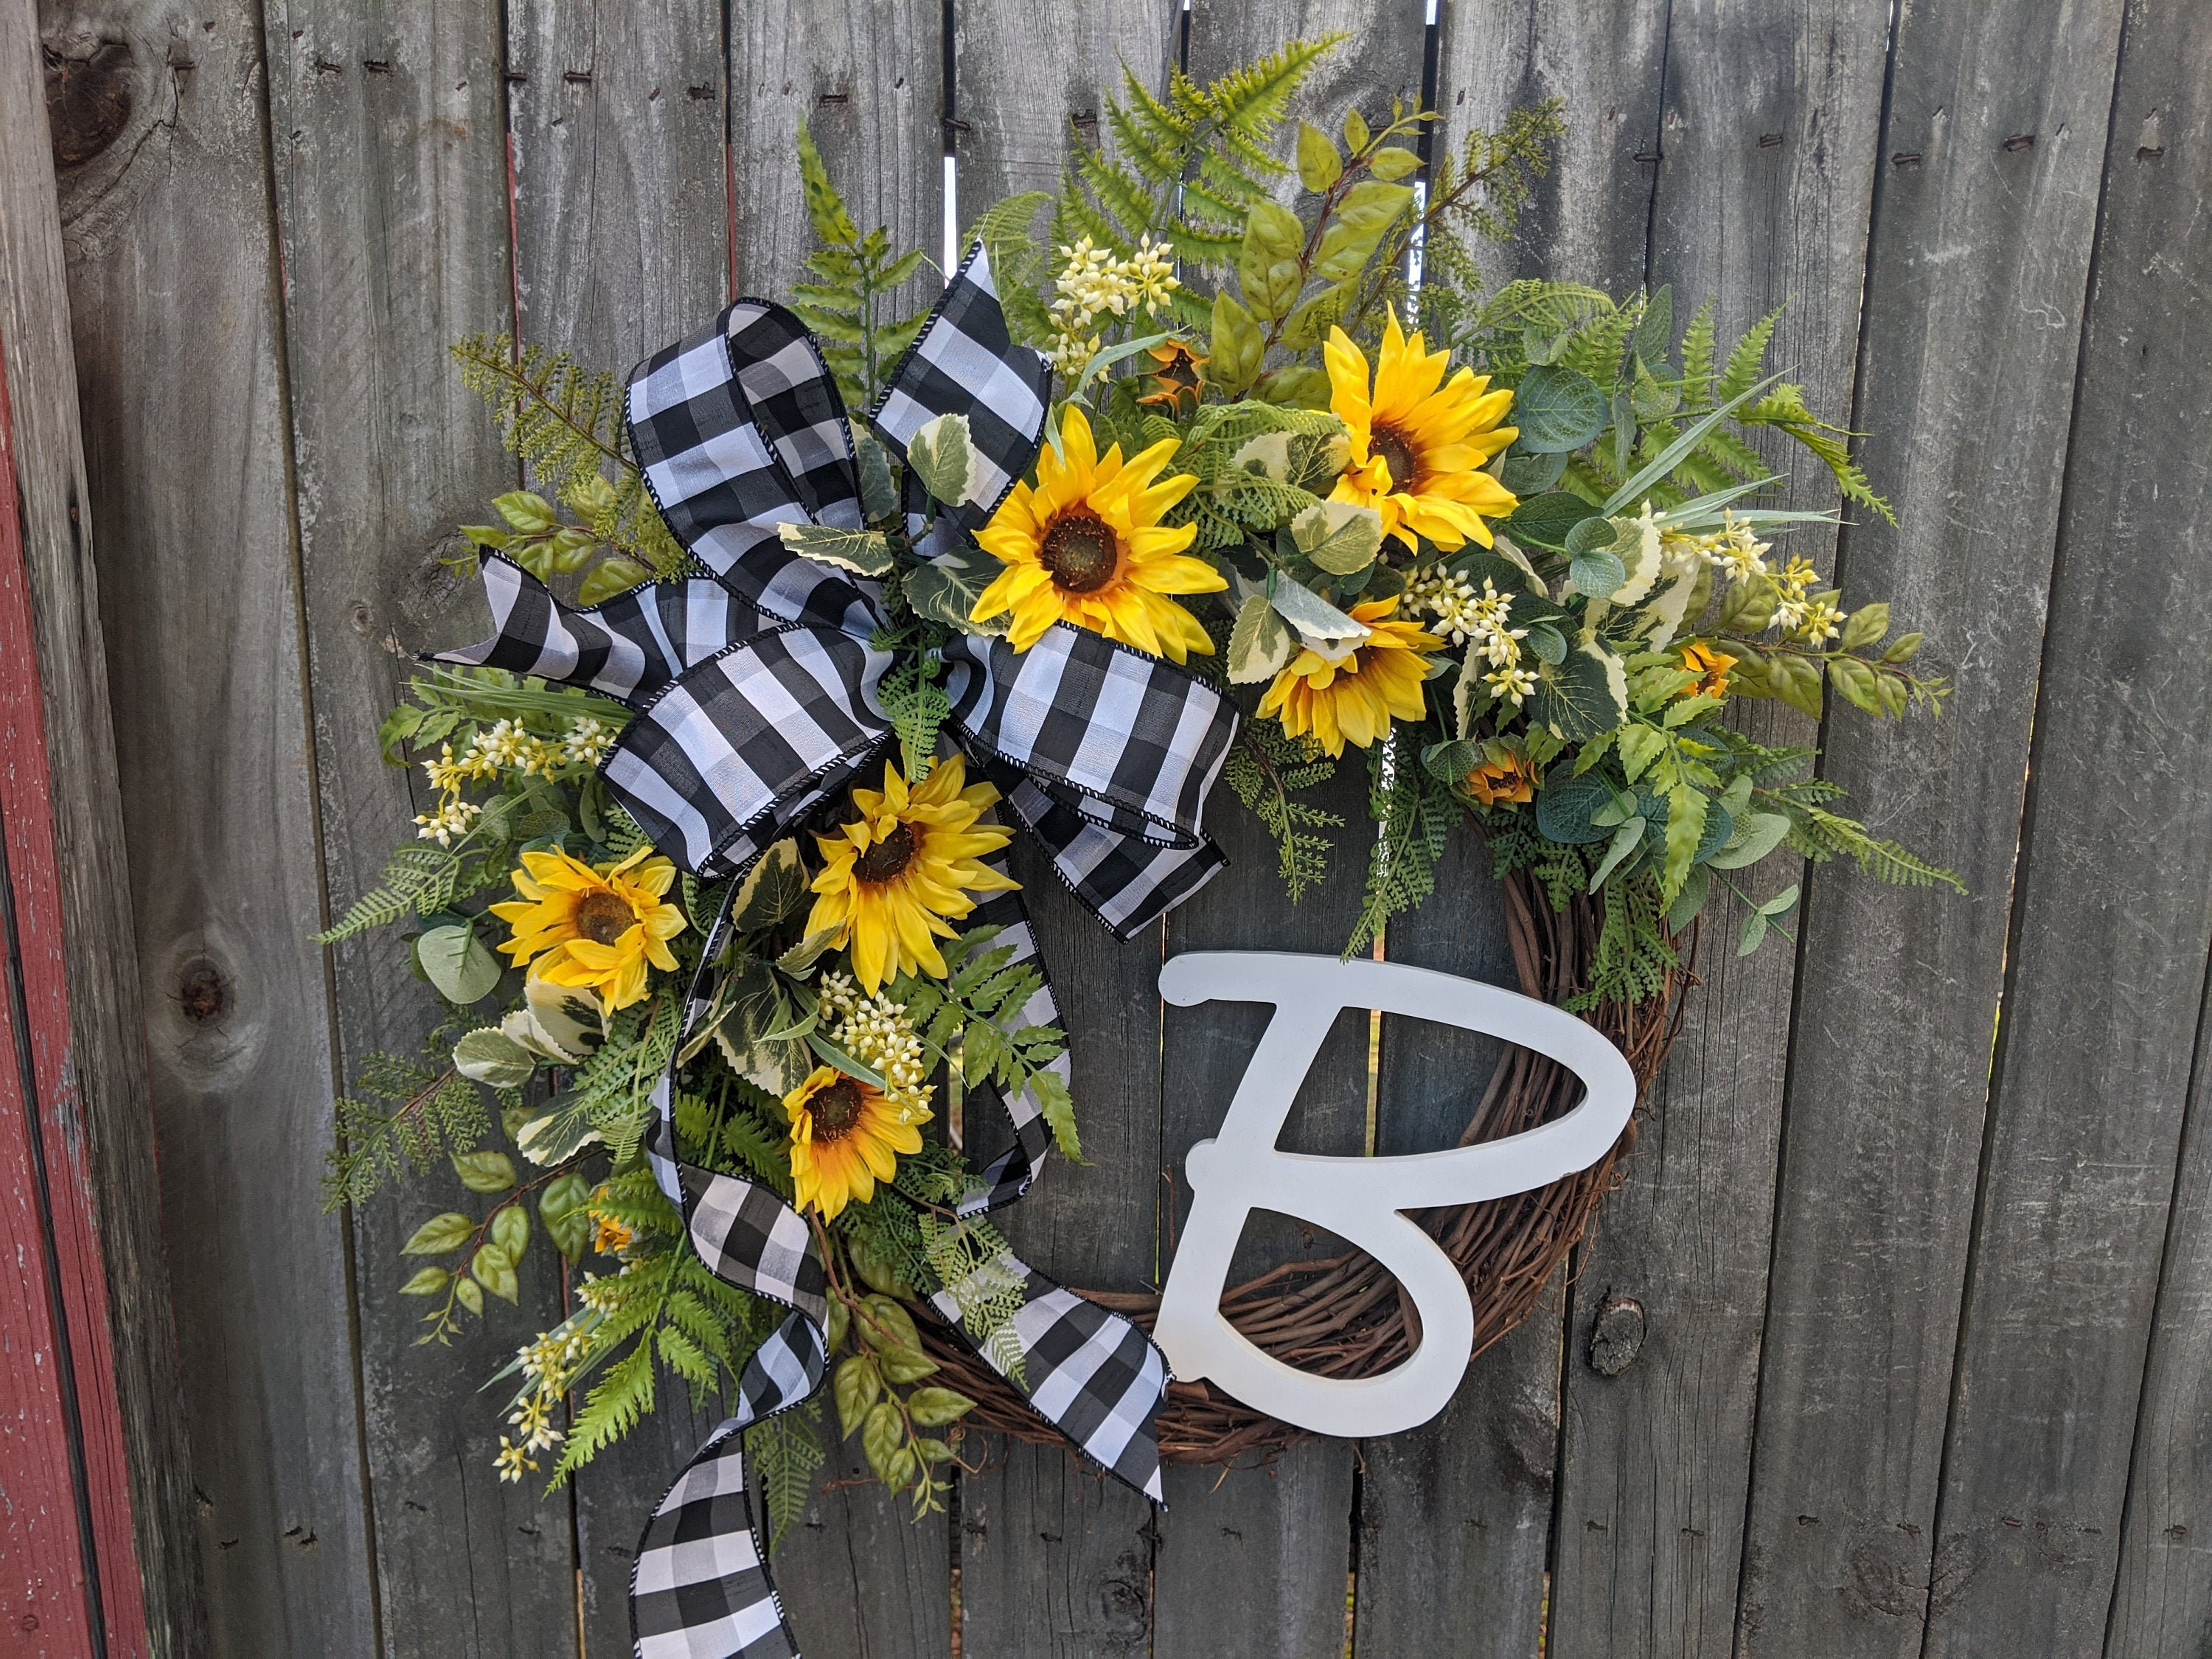 Front Door Wreath Door Wreath Spring Wreath Sunflower Wreath Spring And Summer Wreath Monogram Wreath Burlap Wreath Burlap Bow